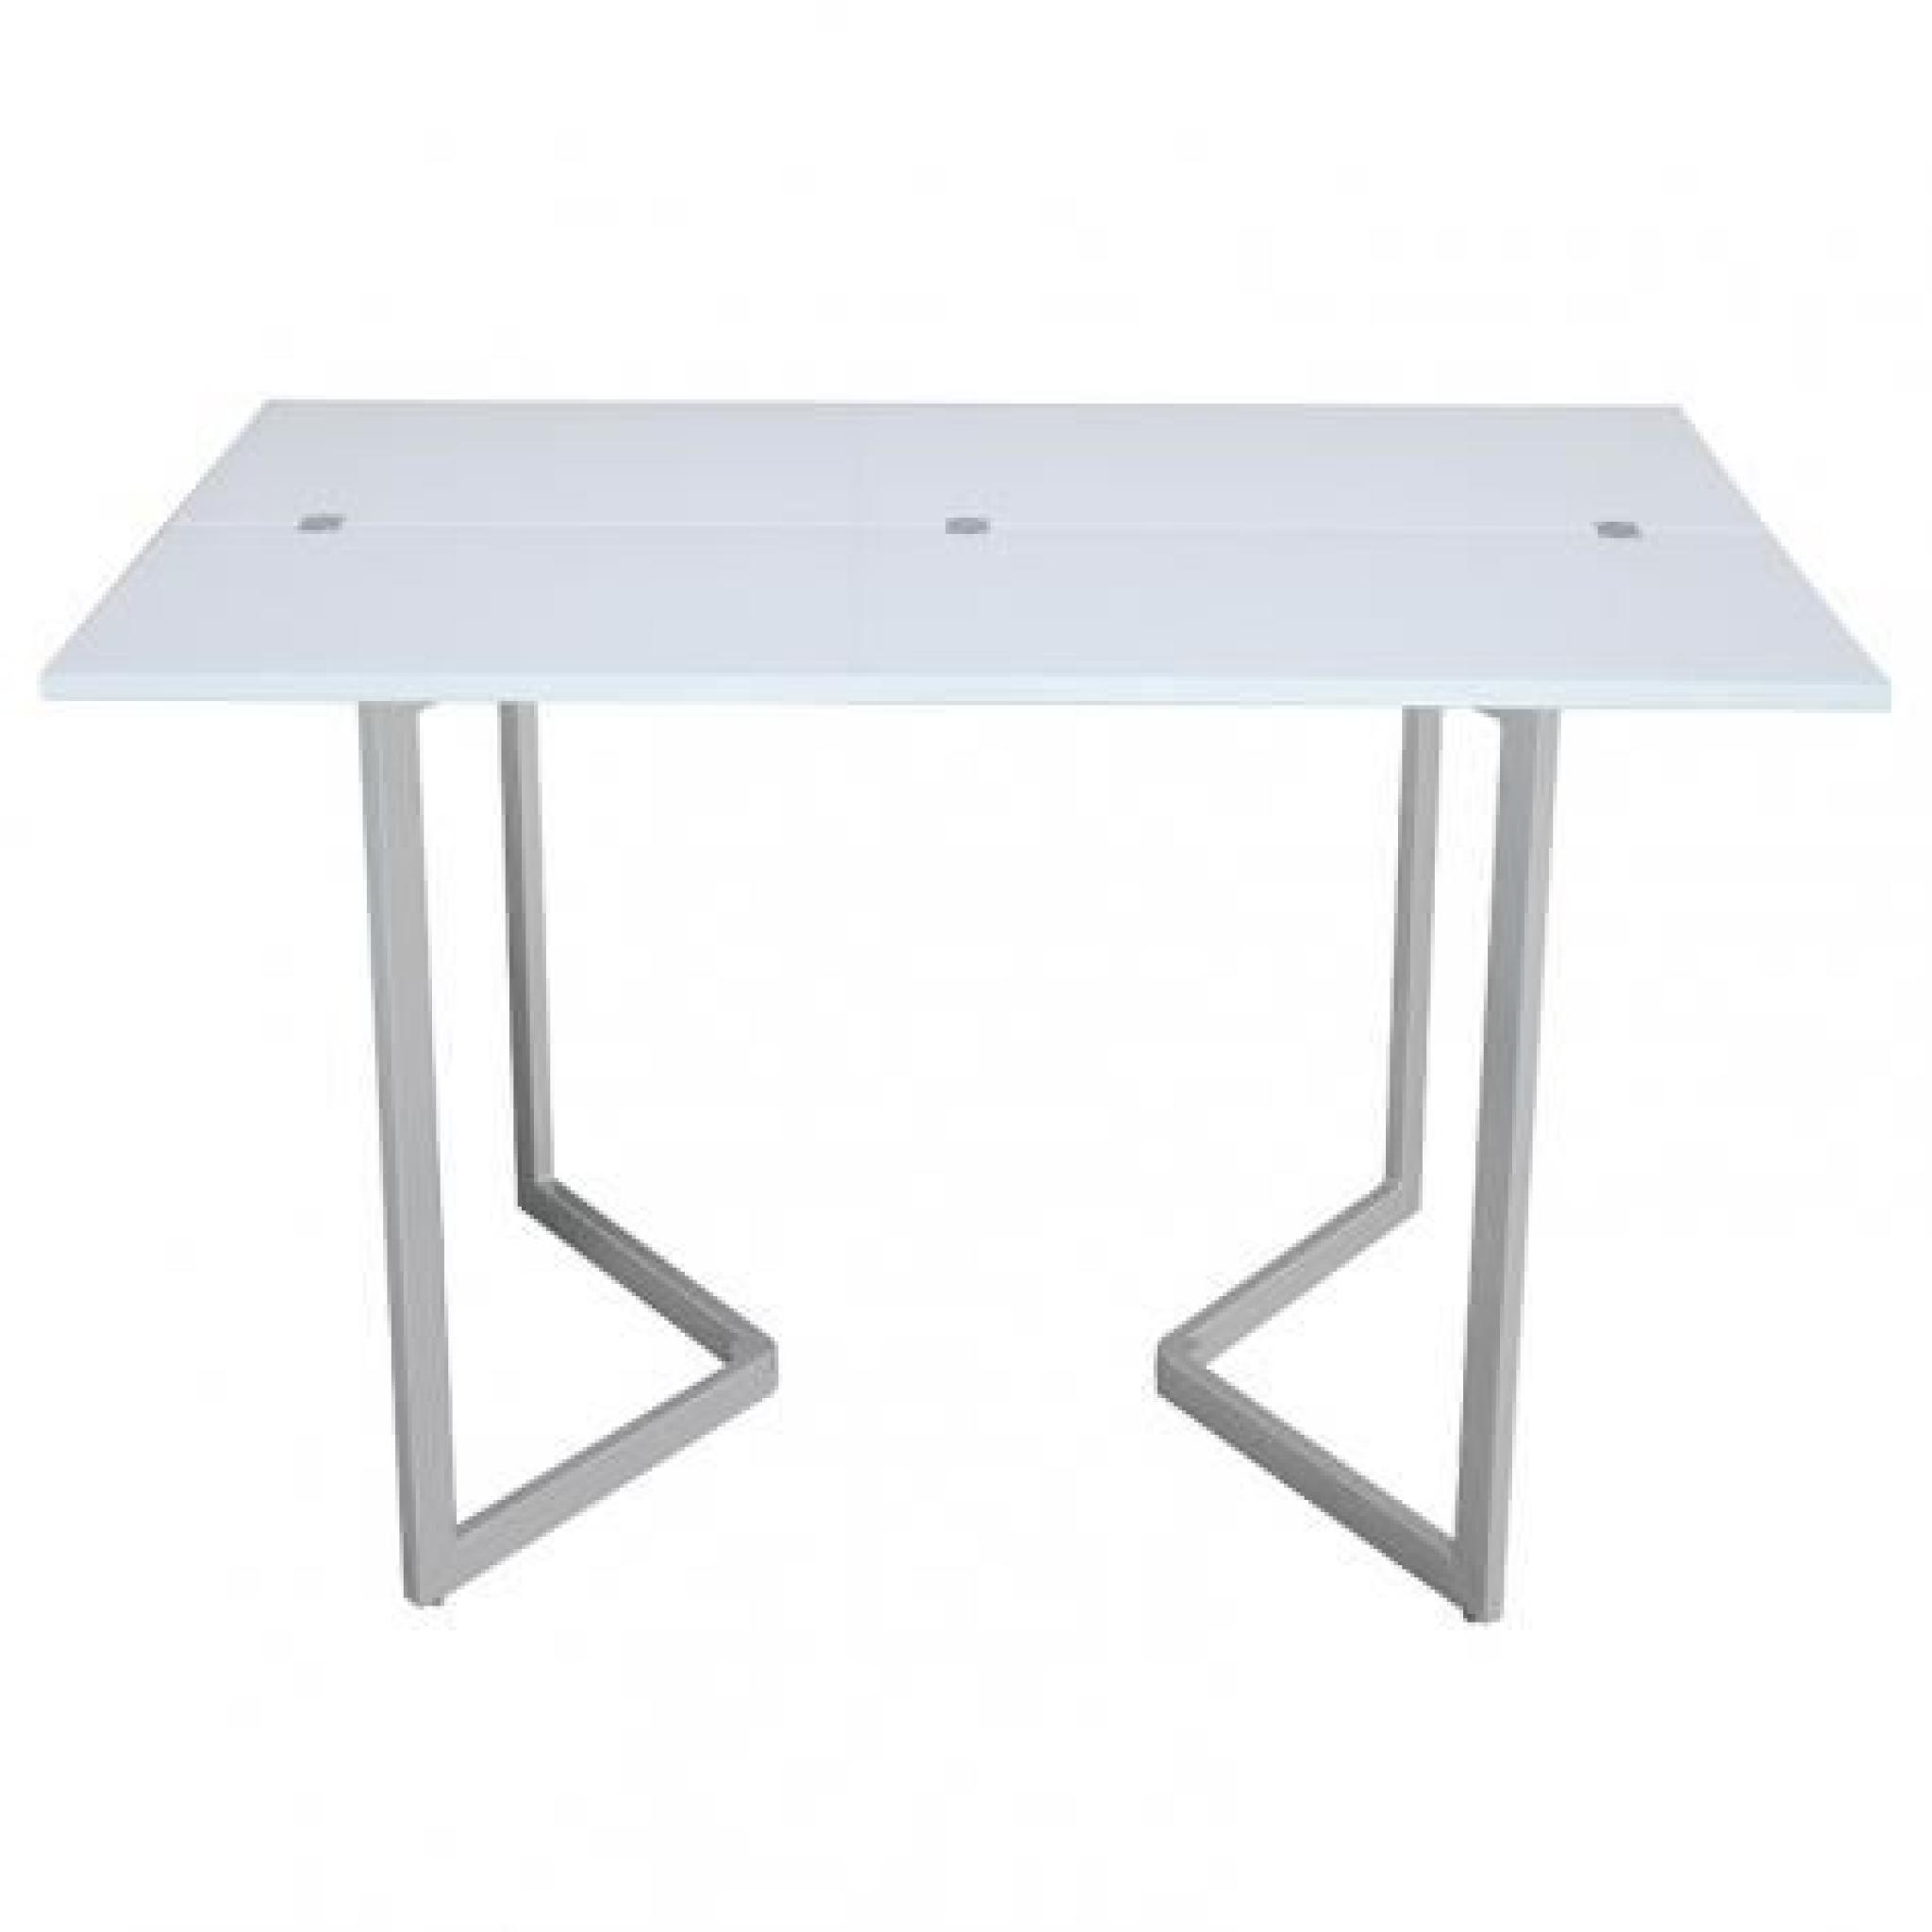 Console Blanche Fly Table Console Extensible Alinea Table Console Extensible Alinea